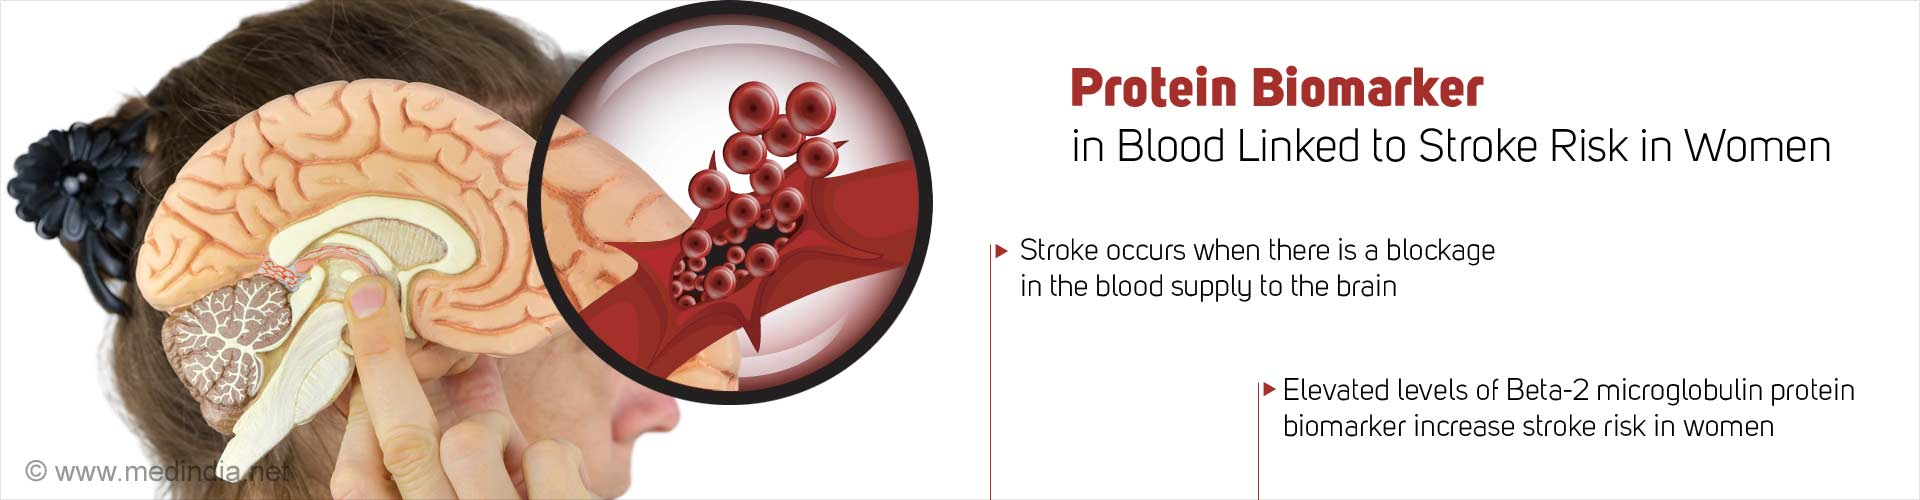 Could High Levels of Protein Biomarker be Linked to Stroke Risk in Women?